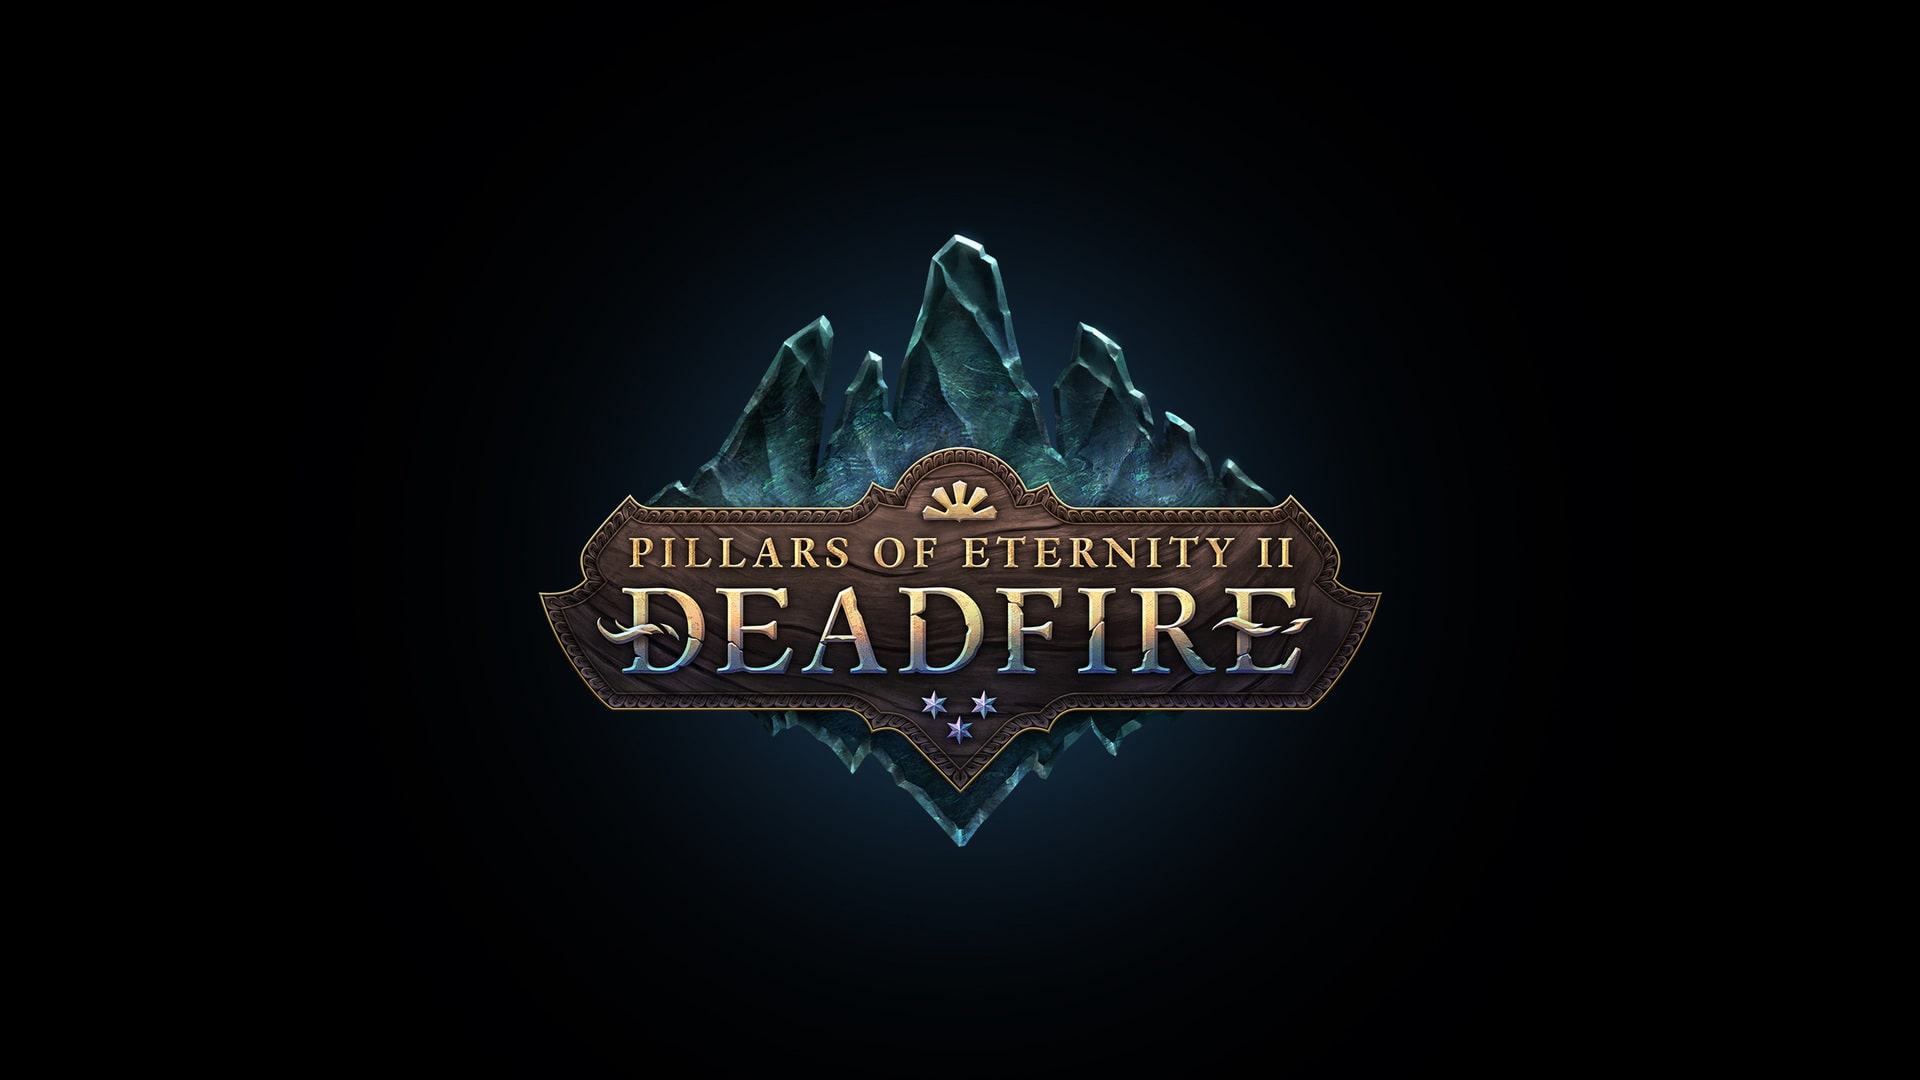 pillars of eternity deadfire